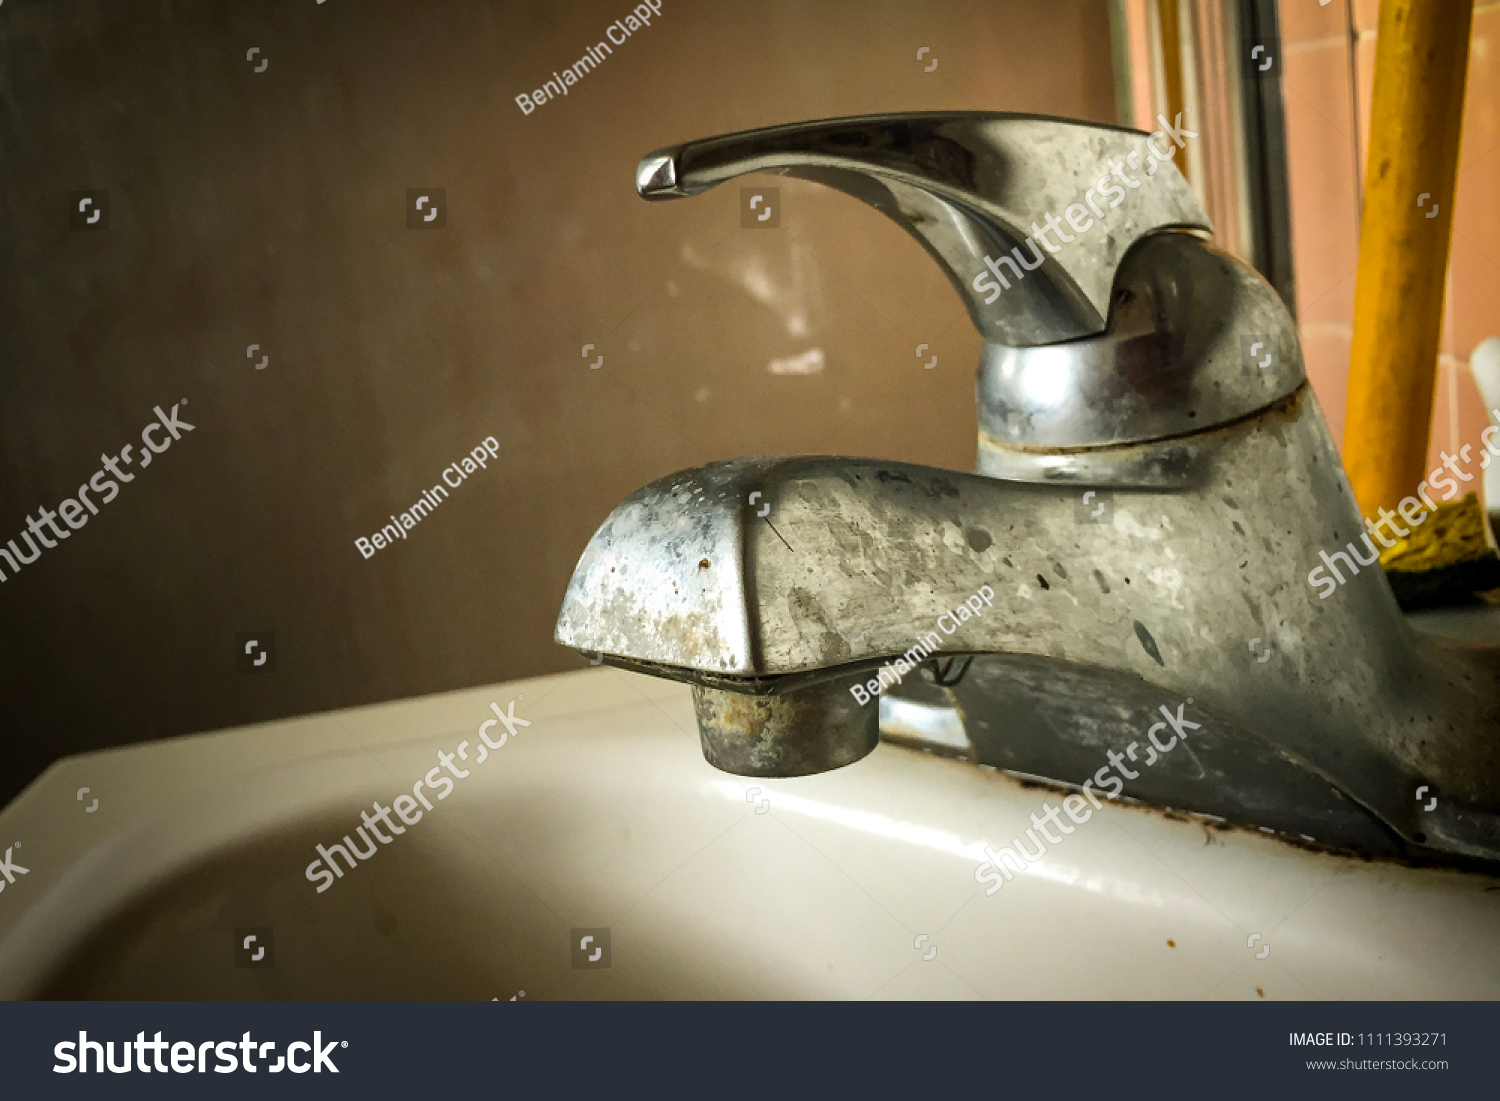 Old Bathroom Sink Faucet Covered Grime Stock Photo (100% Legal ...